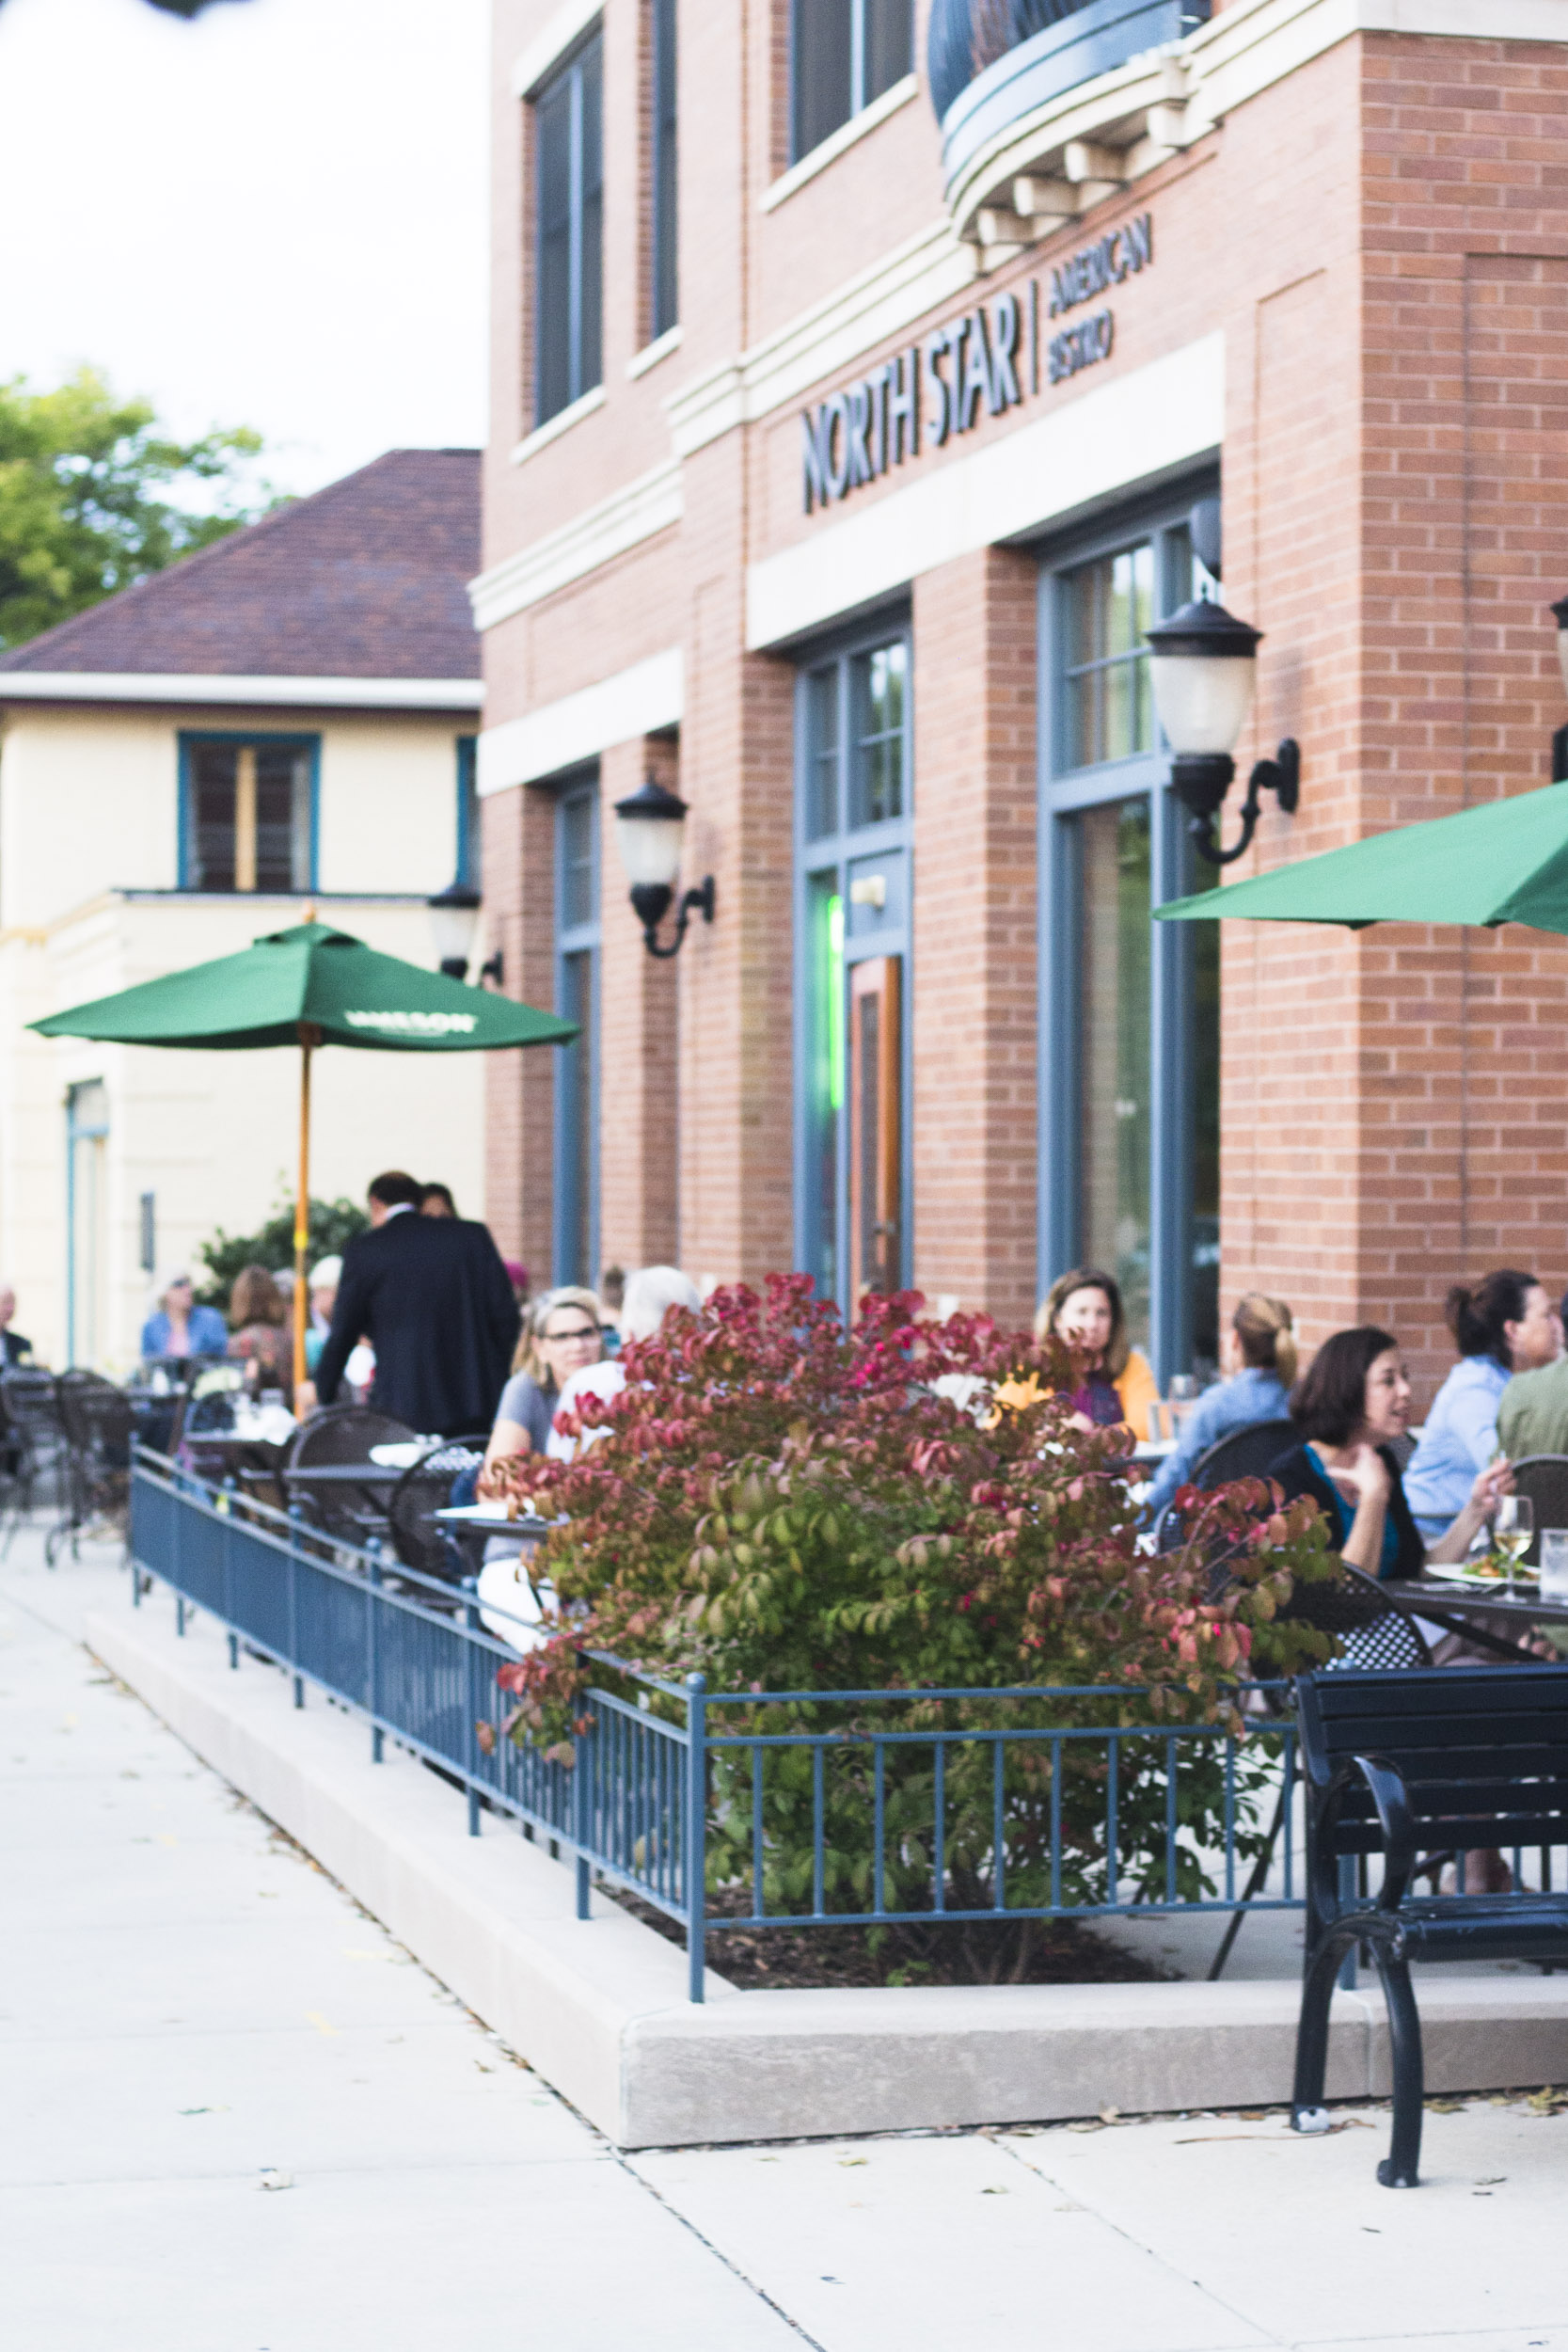 North Star American Bistro | The Cornerstone